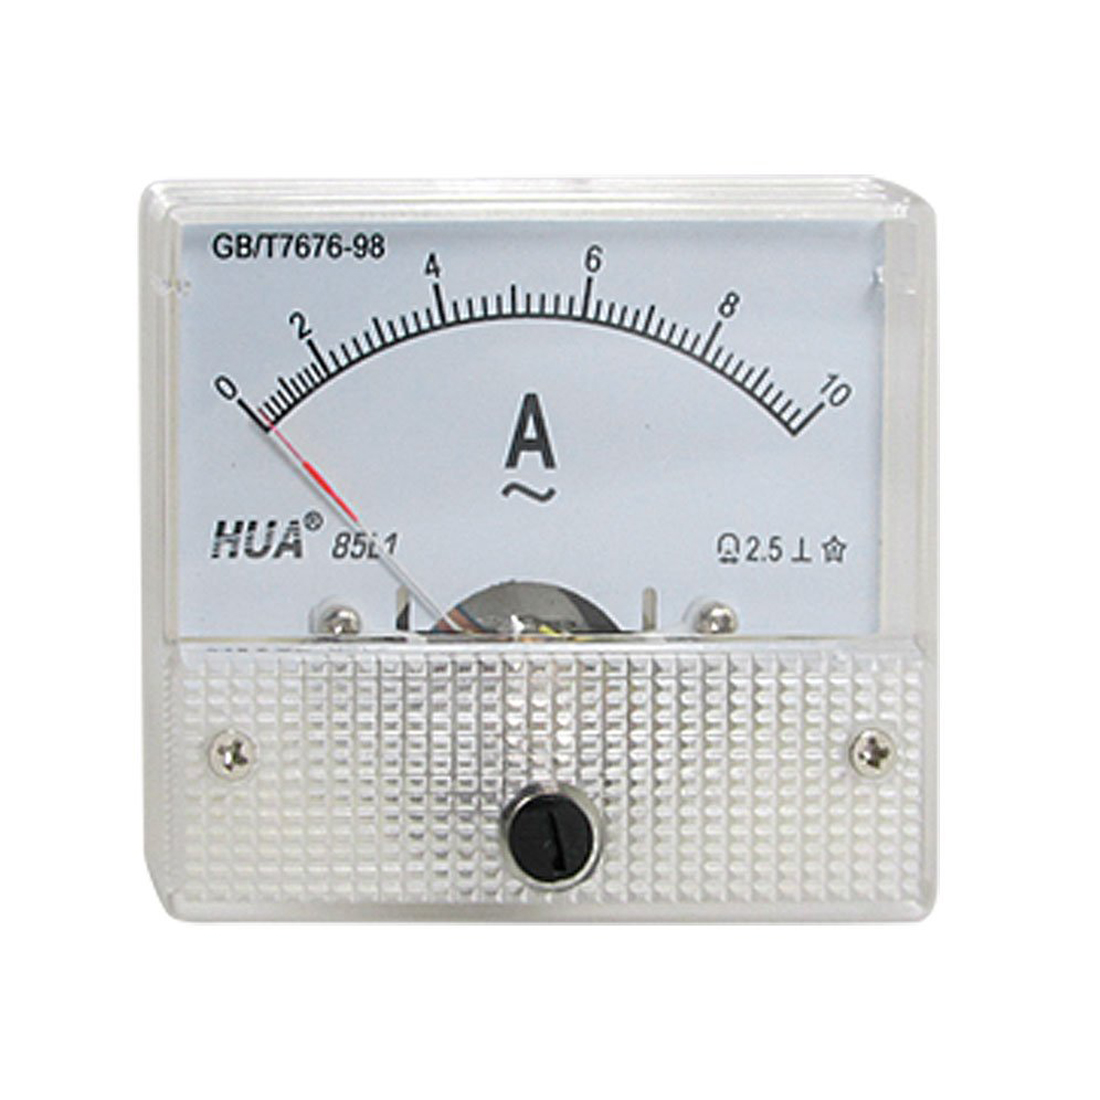 Ac Amp Meter : Cf class accuracy ac a analog panel amp meter l